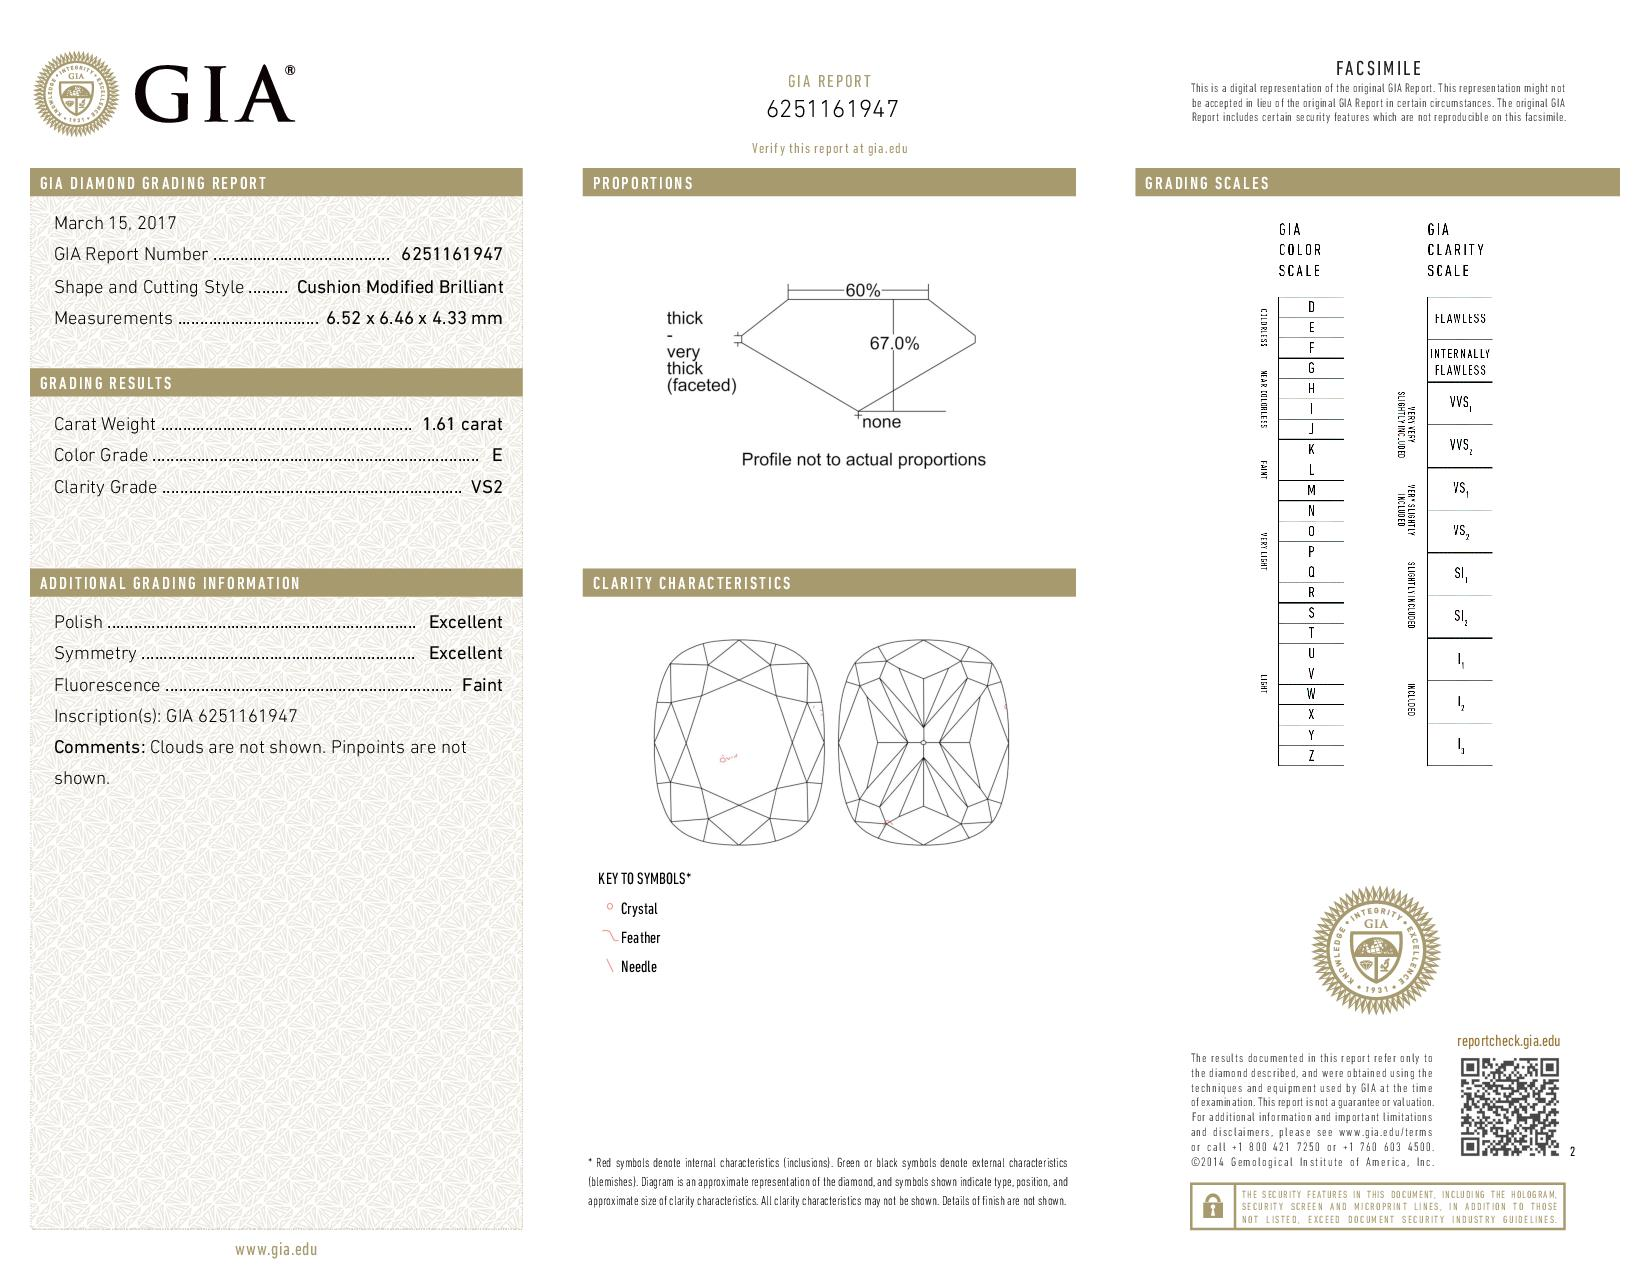 This is a 1.61 carat cushion shape, E color, VS2 clarity natural diamond accompanied by a GIA grading report.